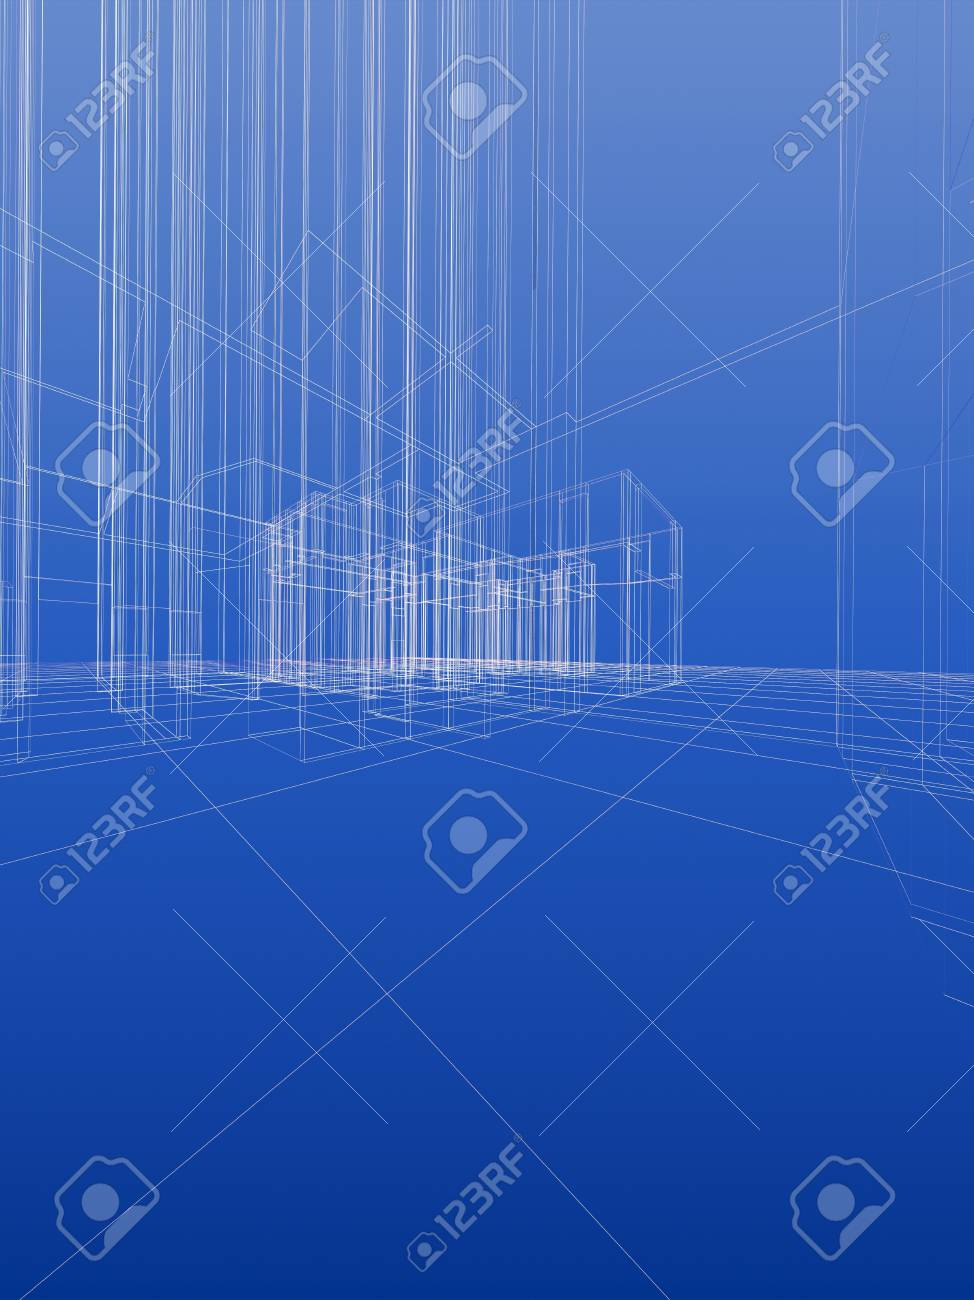 Abstract wireframe sketch background blueprint style vertical abstract wireframe sketch background blueprint style vertical format stock photo 10680657 malvernweather Choice Image